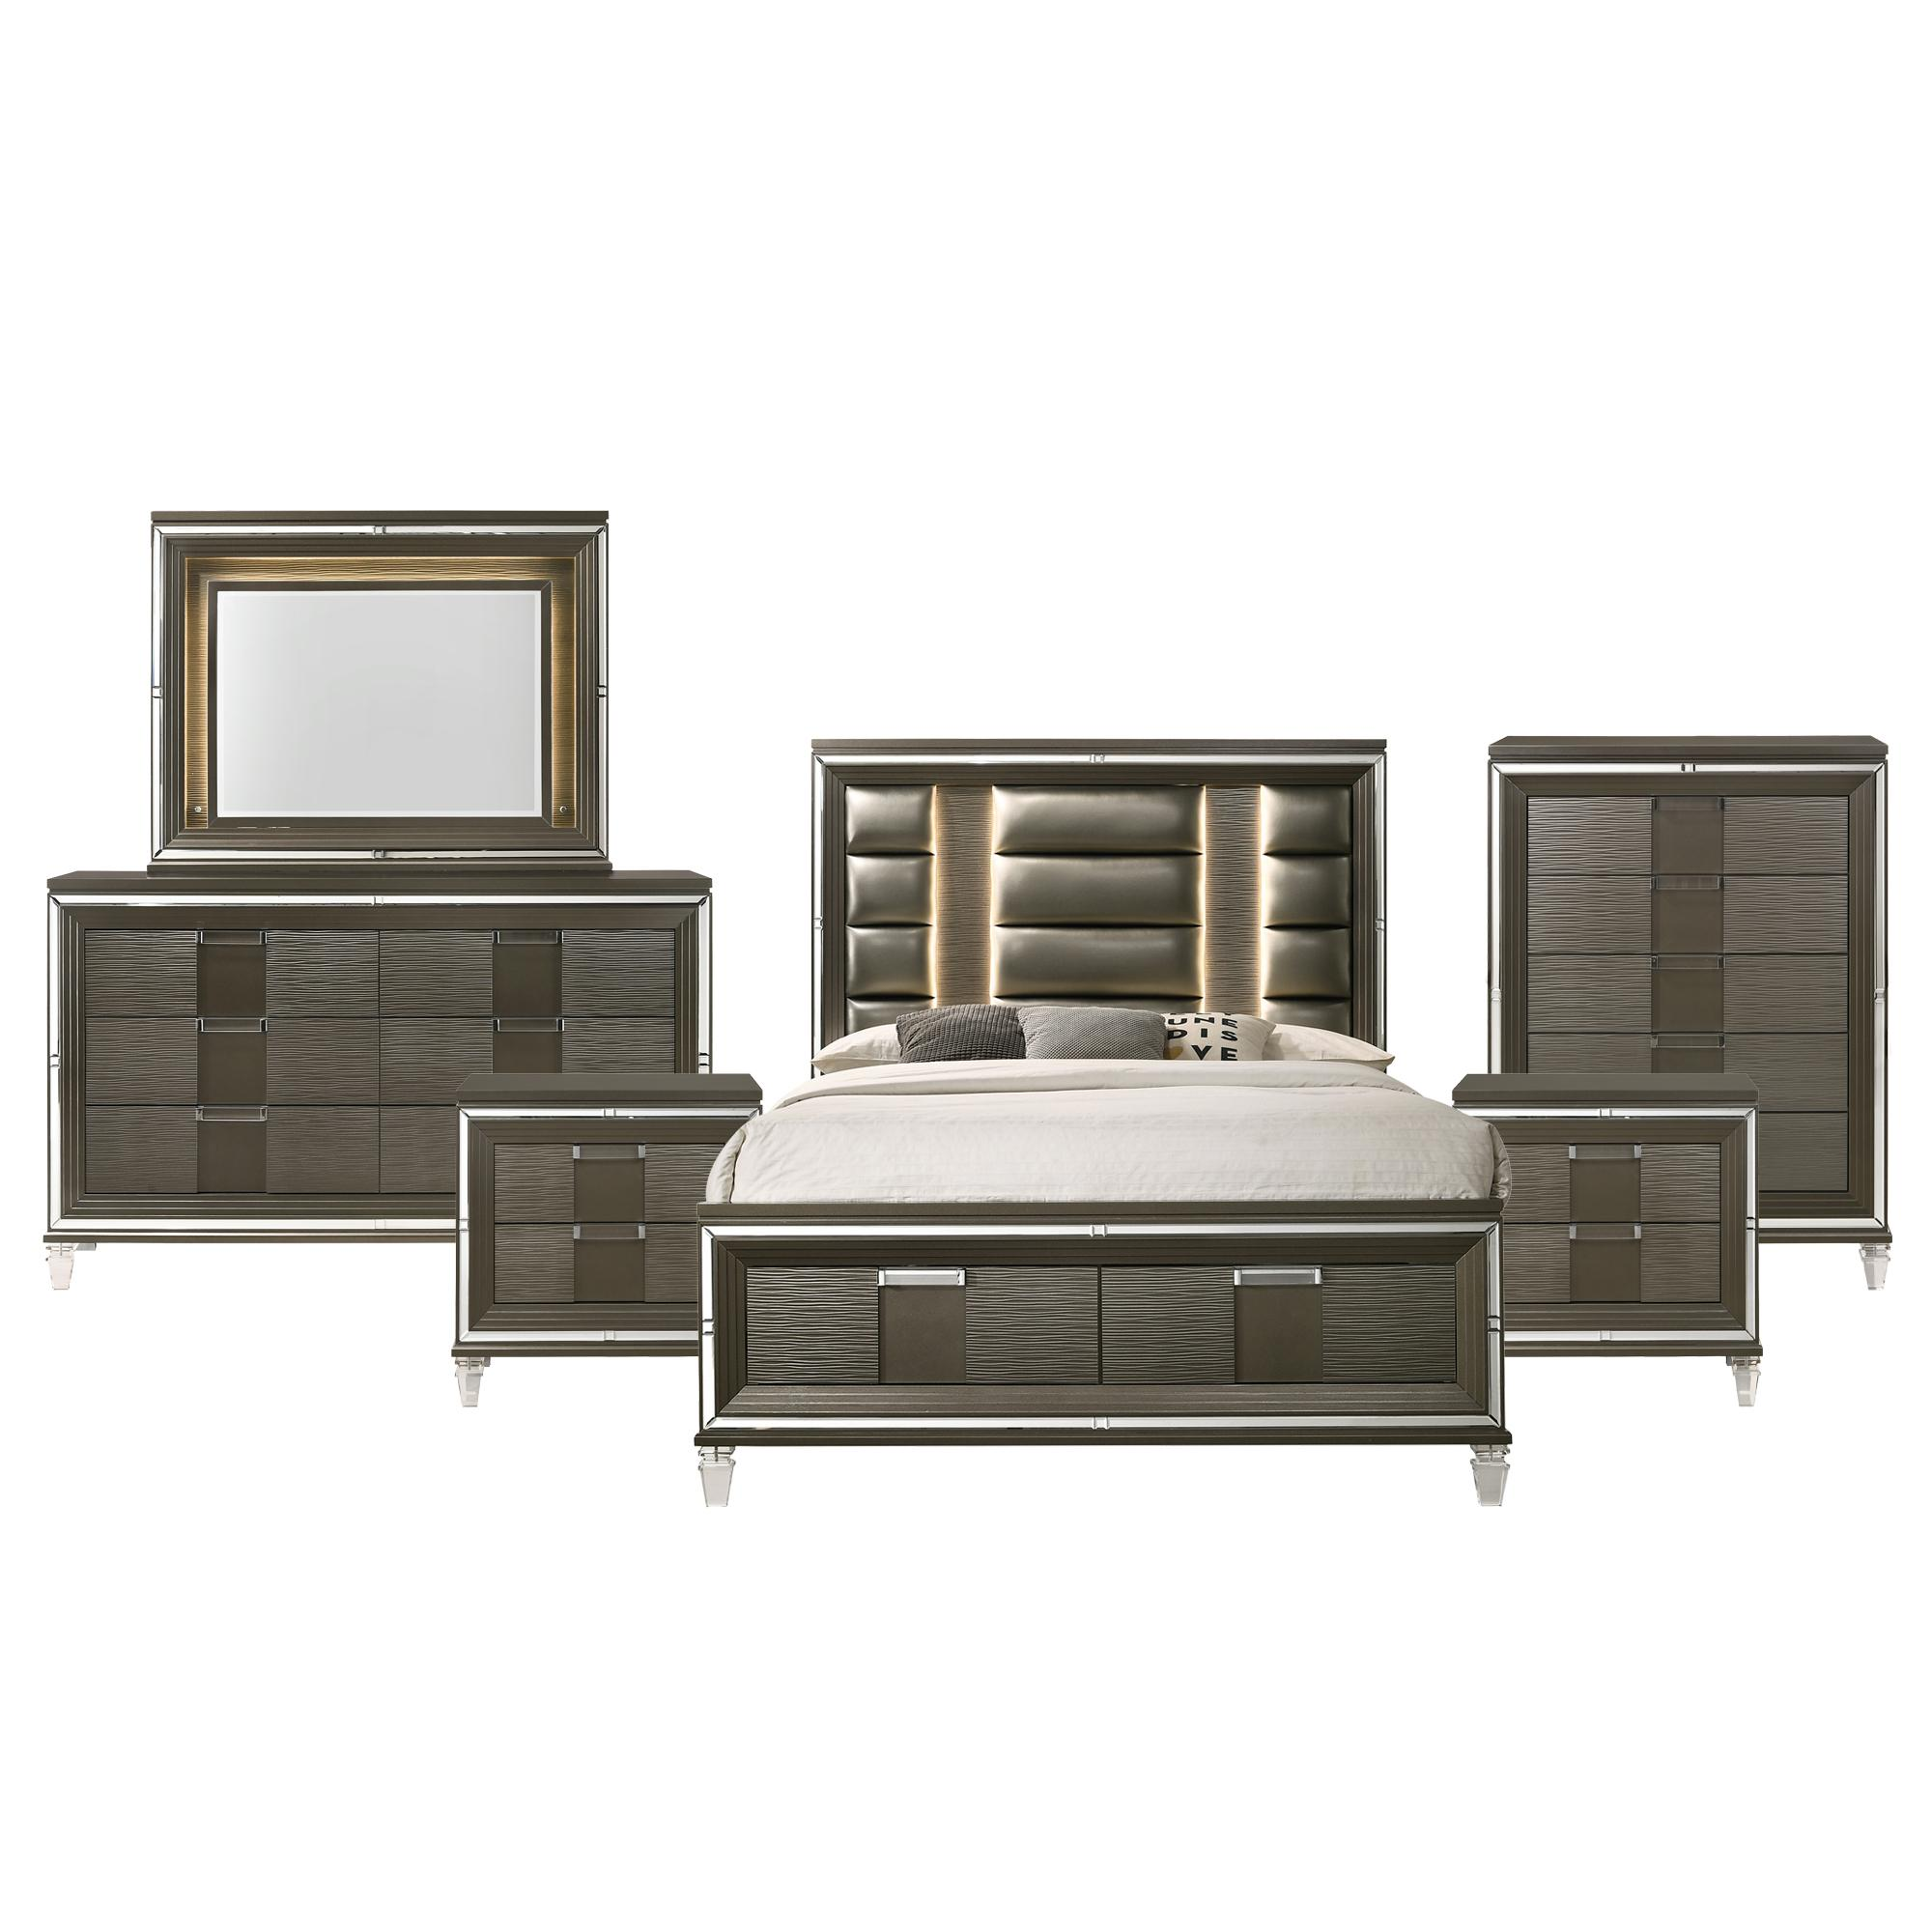 Picket House Charlotte Copper 6pc Bedroom Set With 2 Drawers Storage